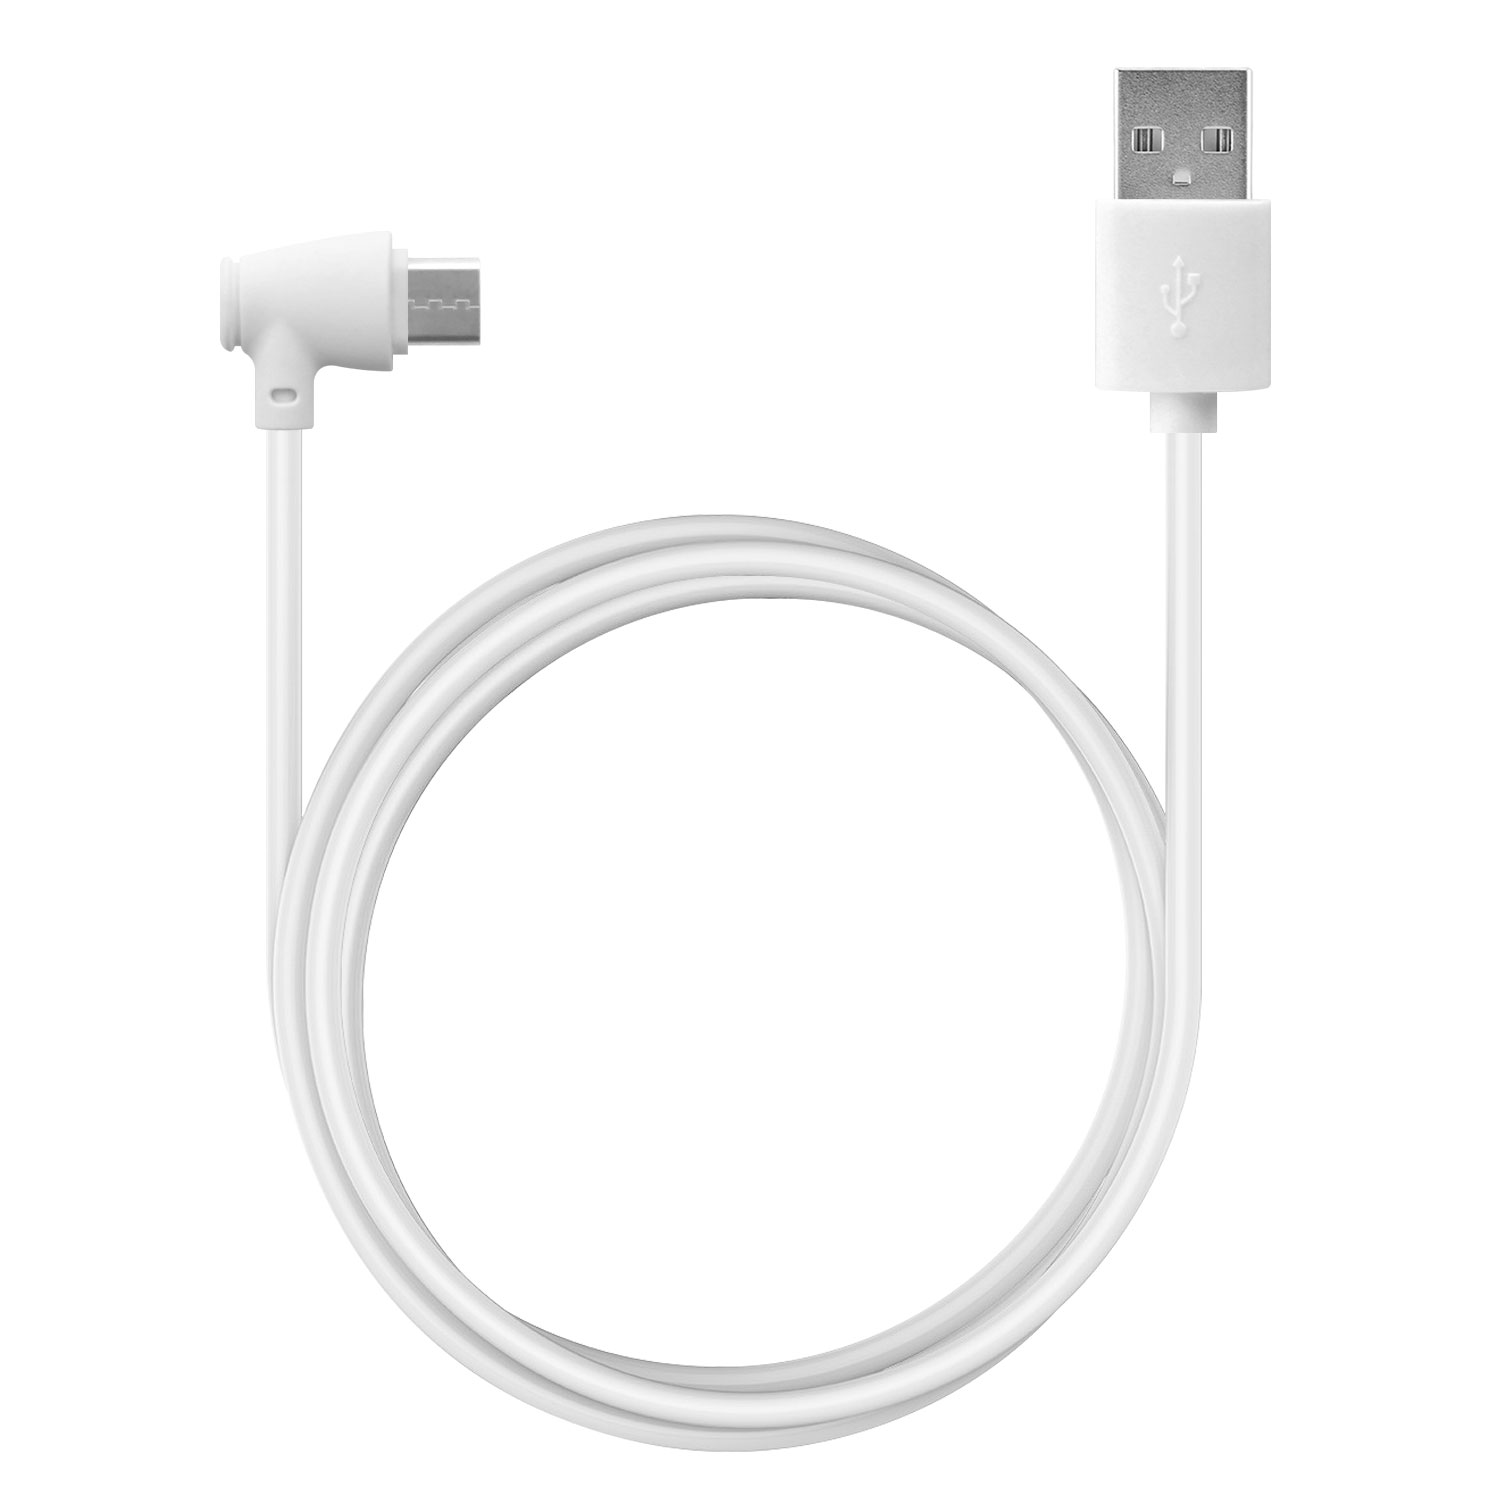 Samsung Galaxy A10e USB Type-C To USB Type-A Data Charging Cable White 3.3ft Angled